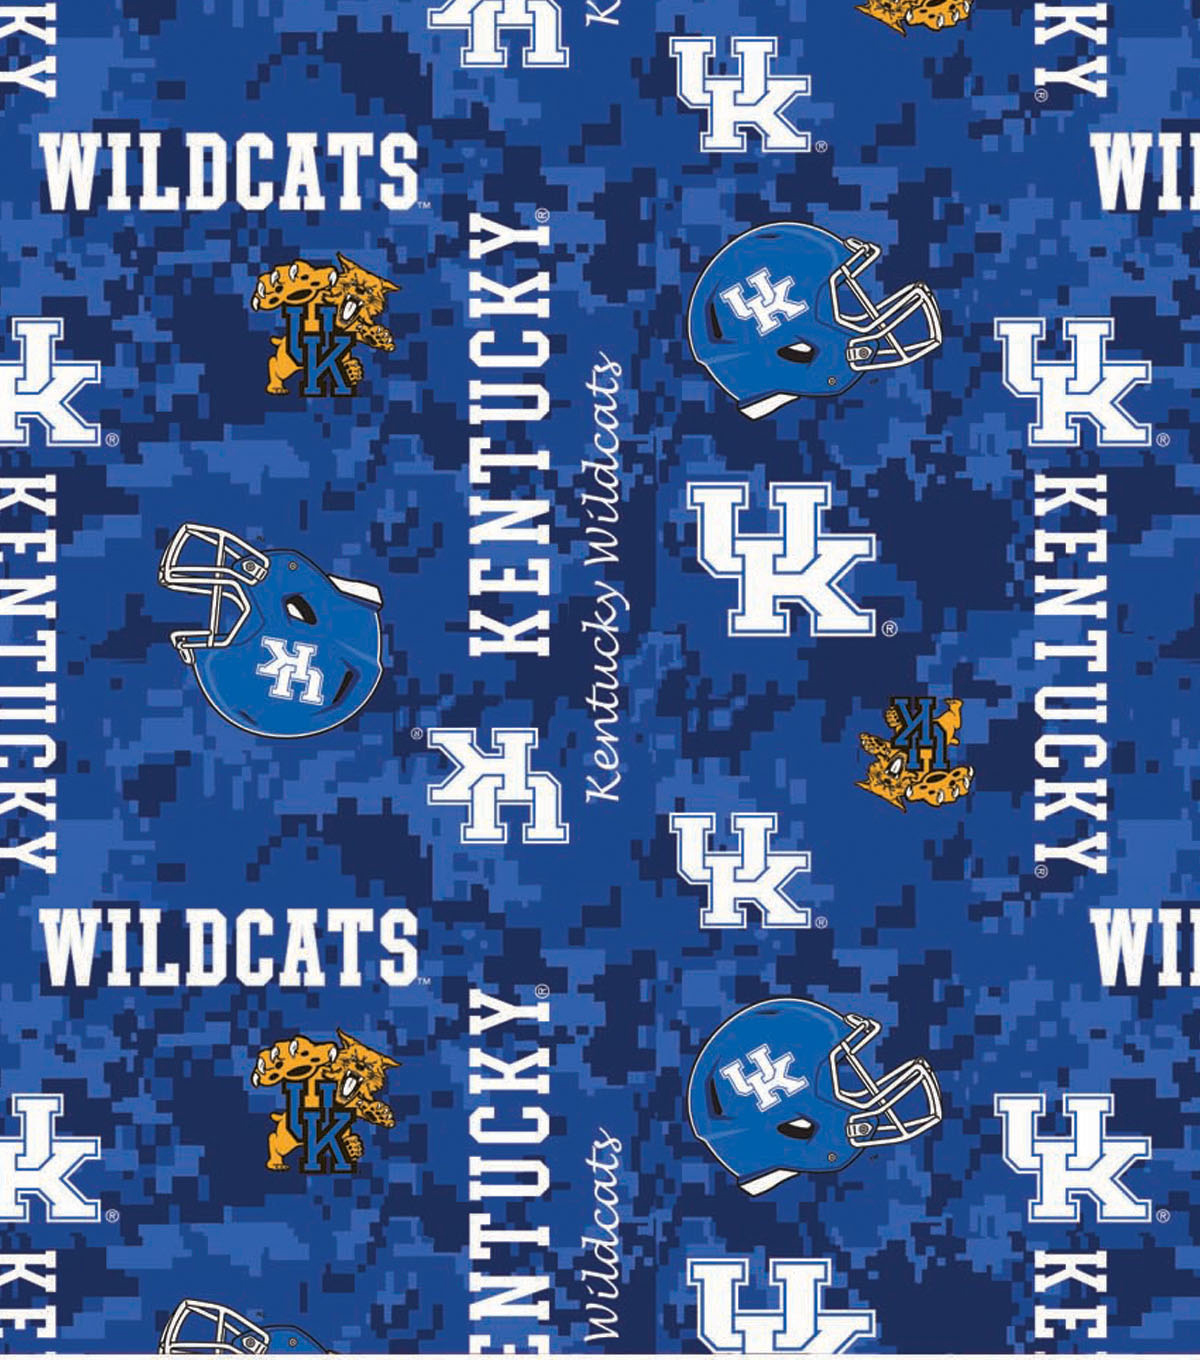 University of Kentucky Wildcats Fleece Fabric -Digital Camo